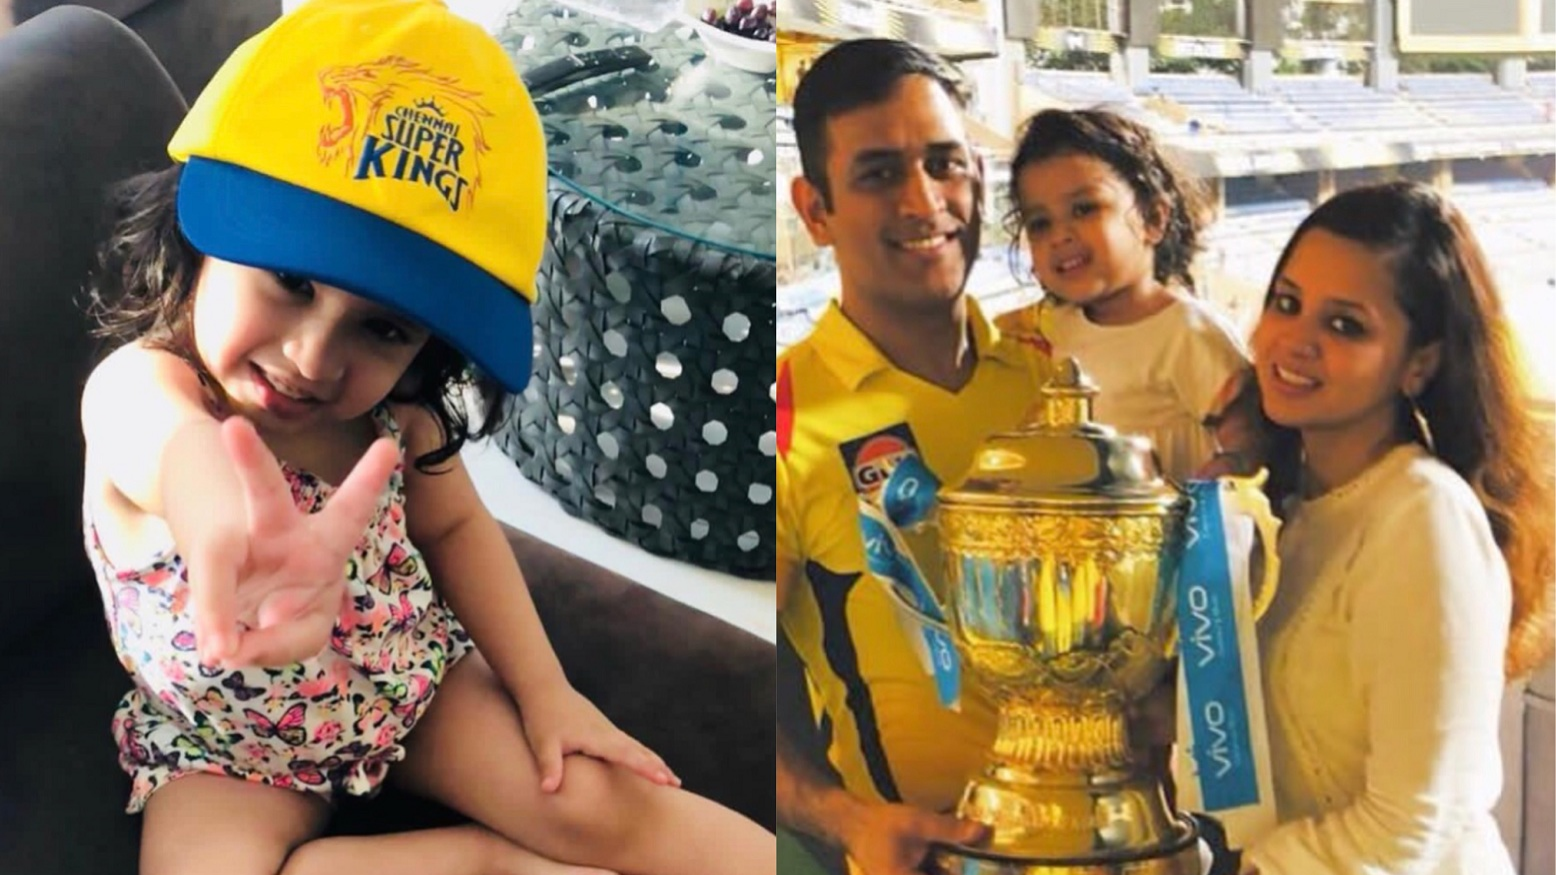 WATCH: Bad news for CSK, Ziva Dhoni will now support another team in IPL